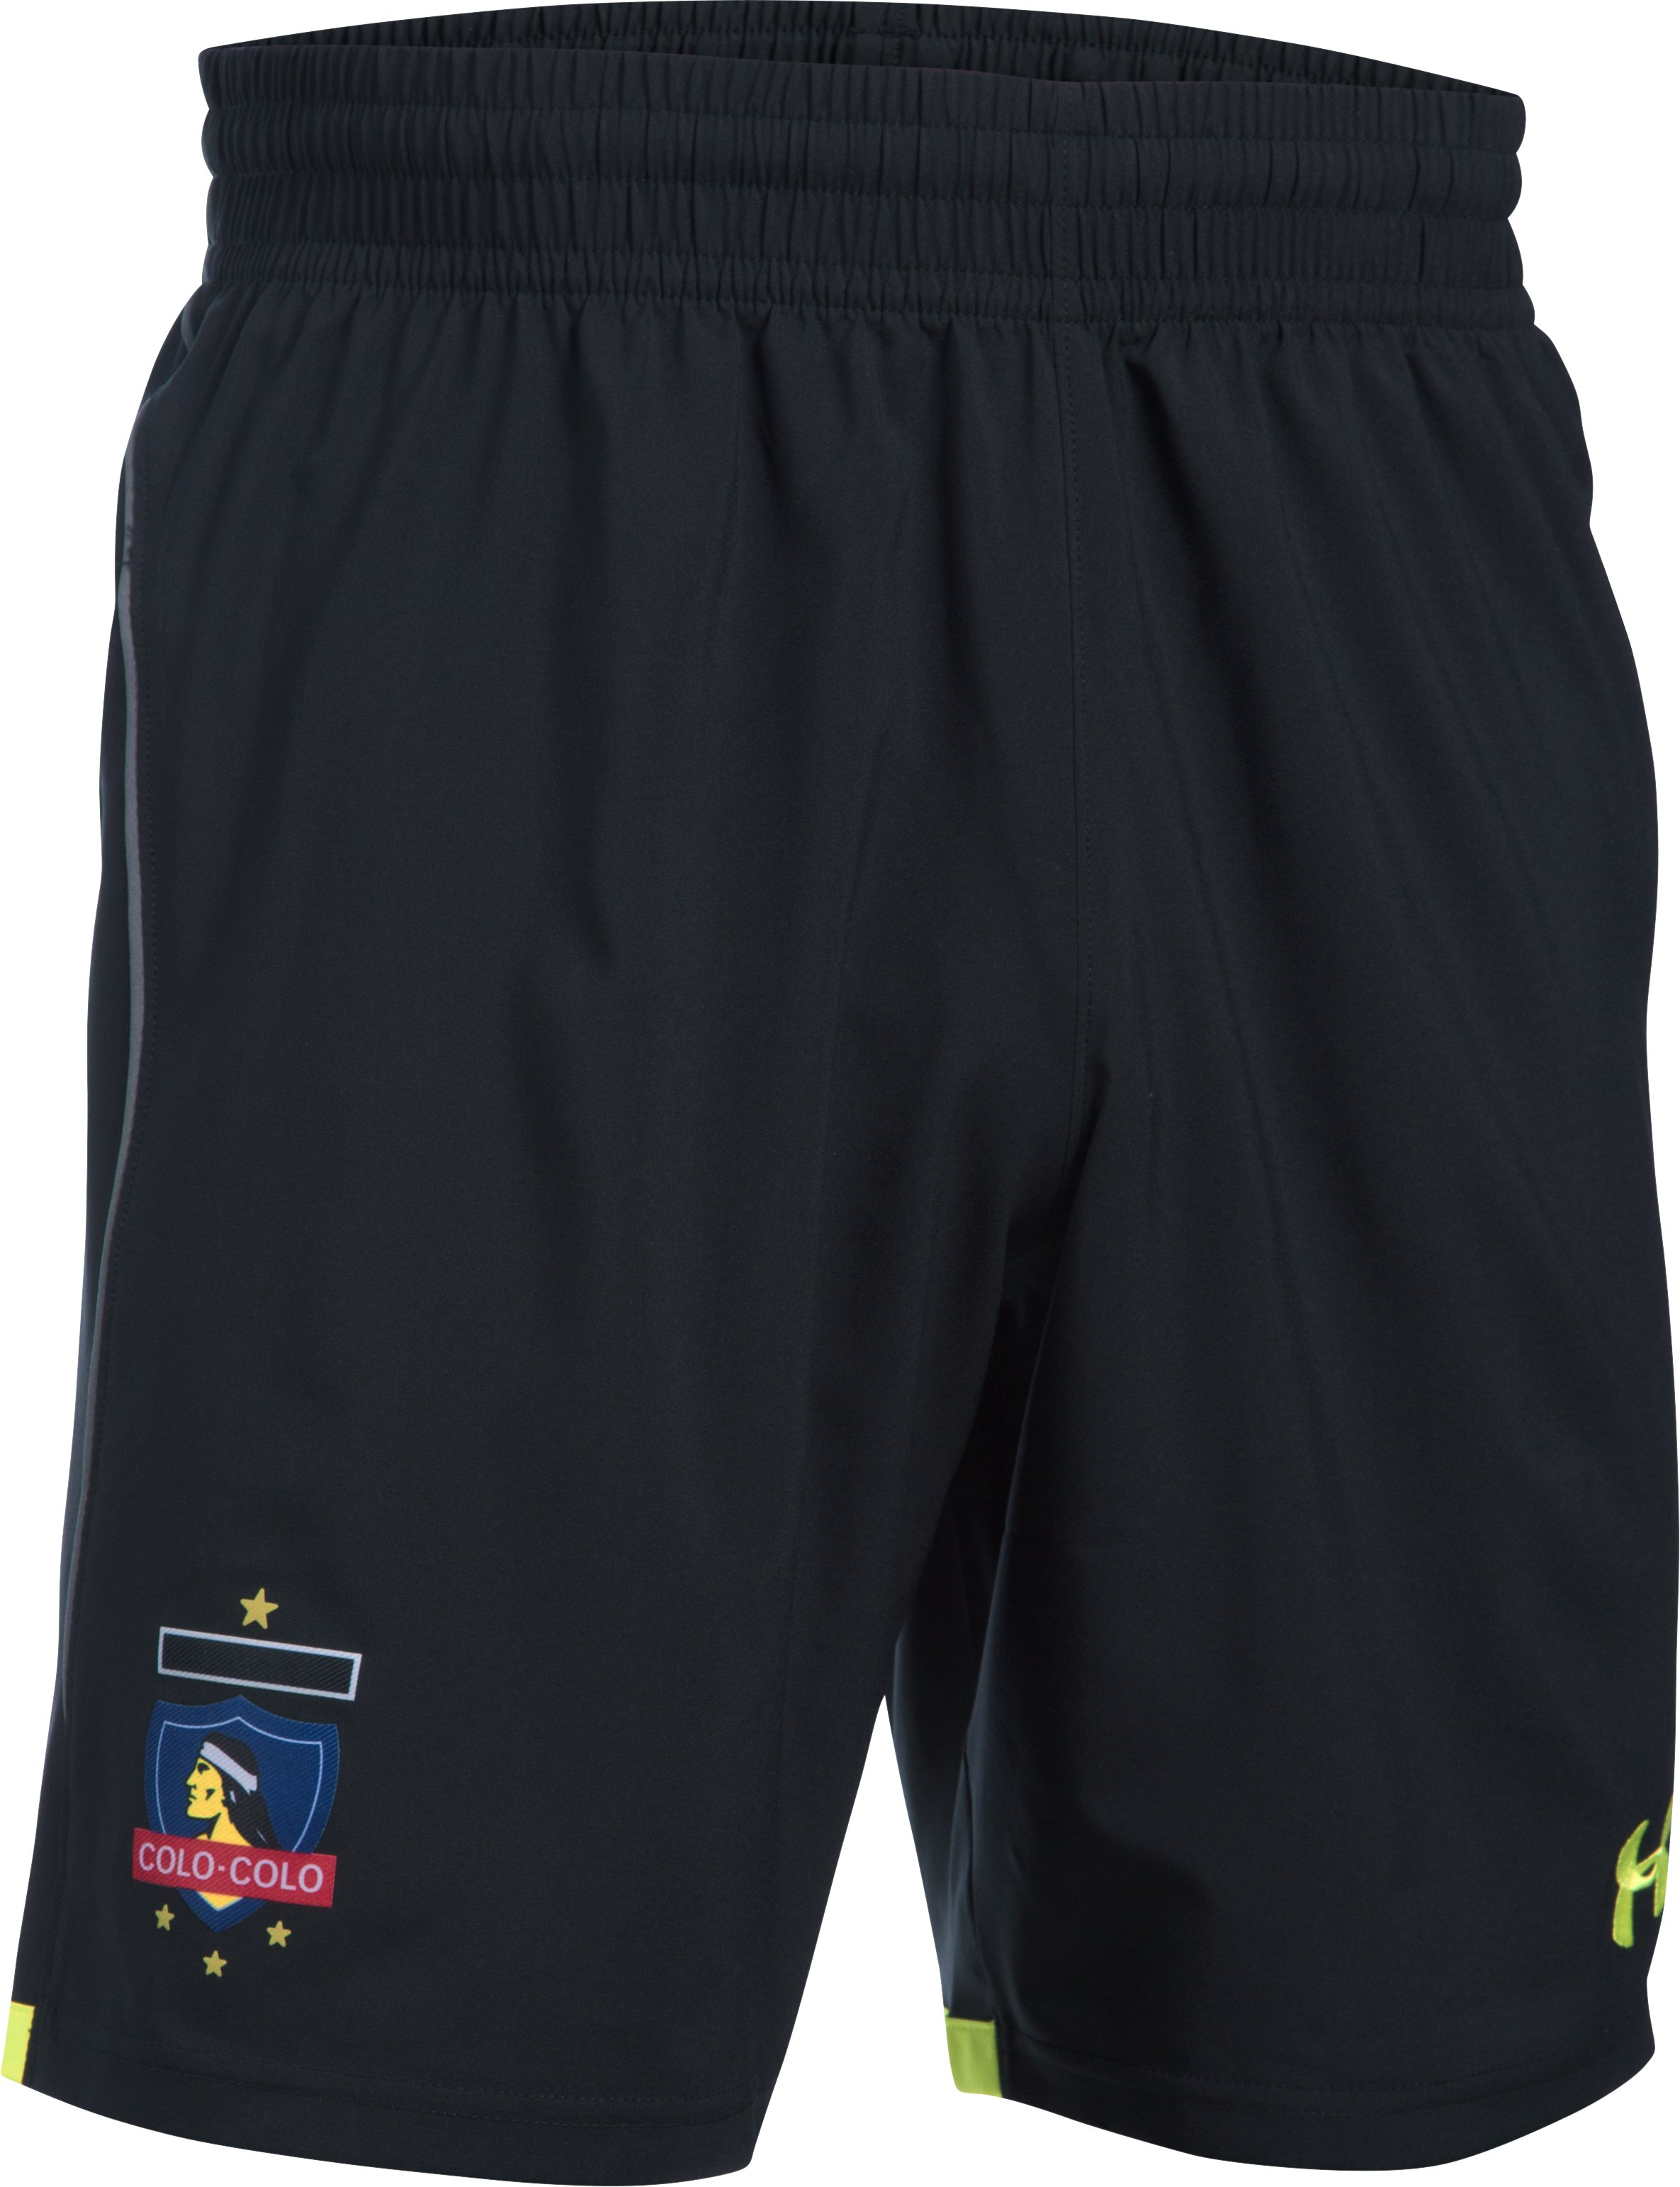 Men's Colo-Colo Training Shorts, Black